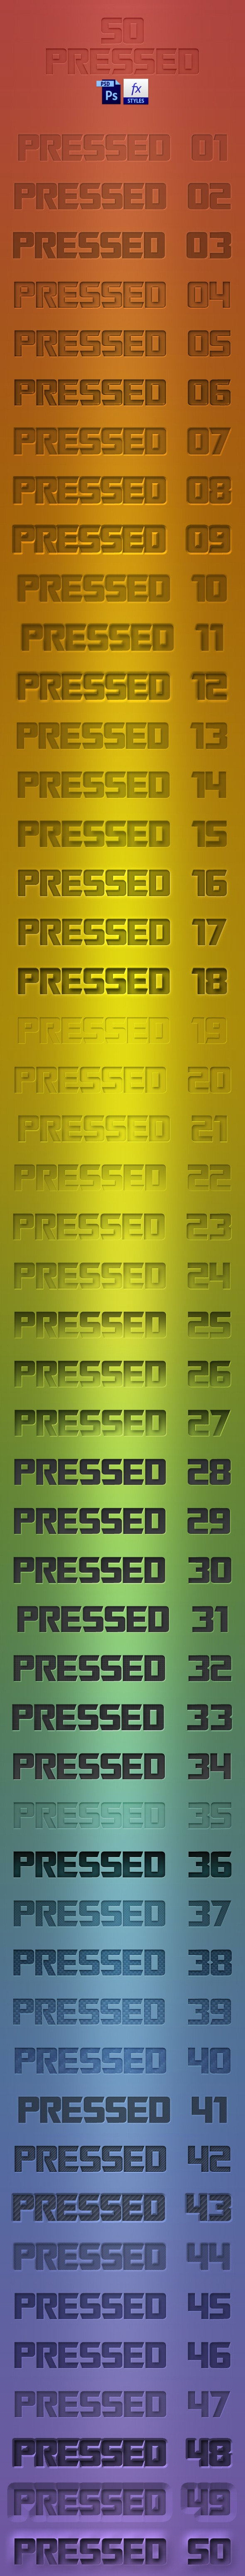 50 Pressed PSD Styles - Styles Photoshop